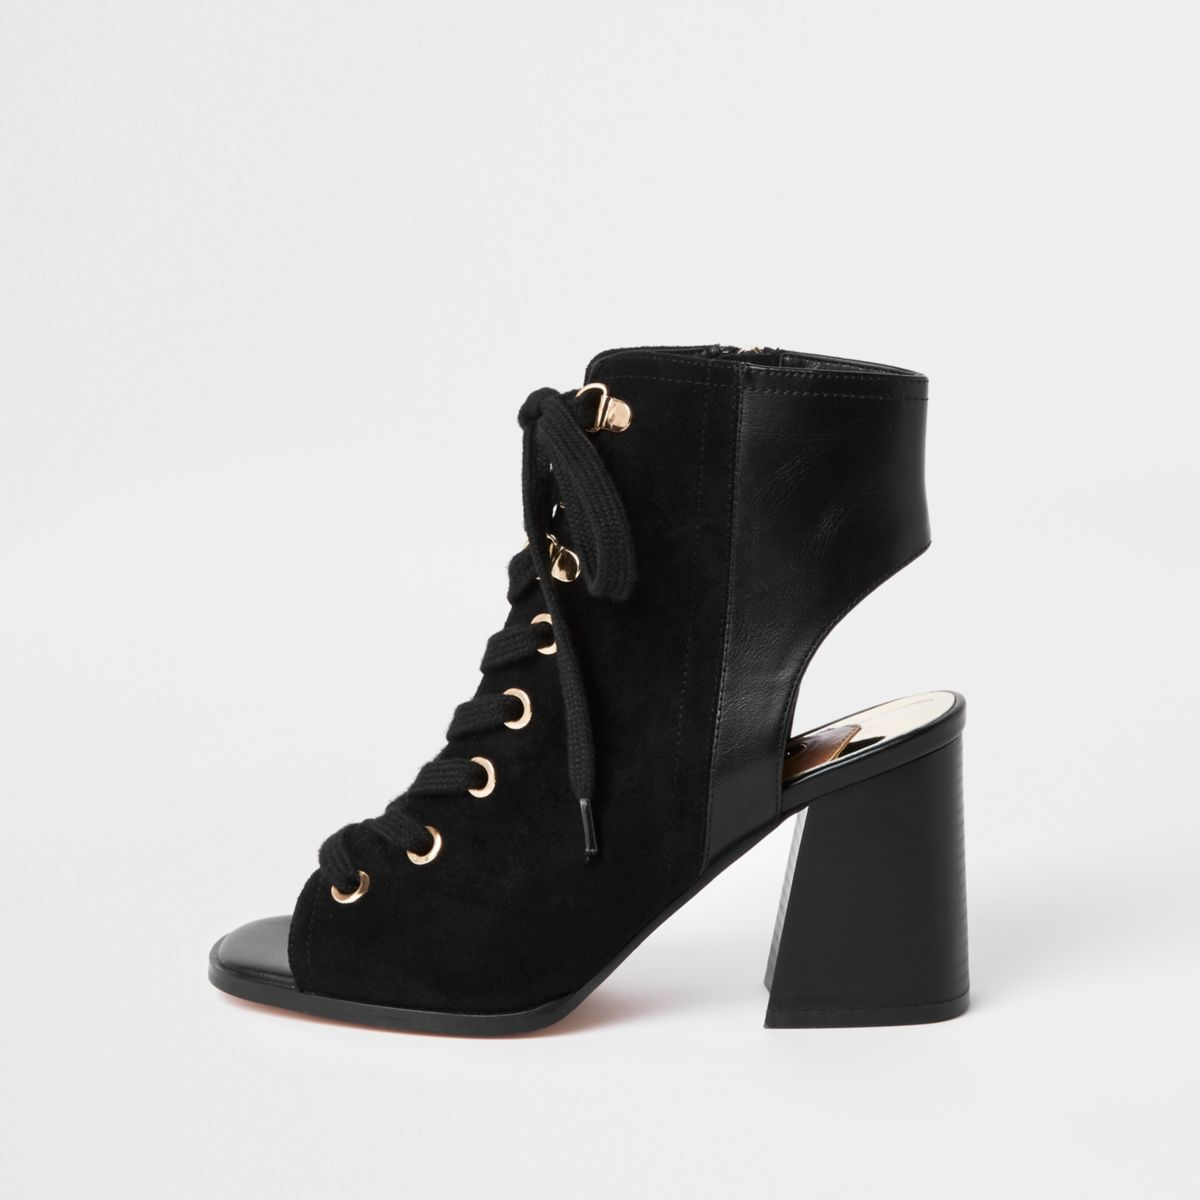 Black lace-up shoe boots